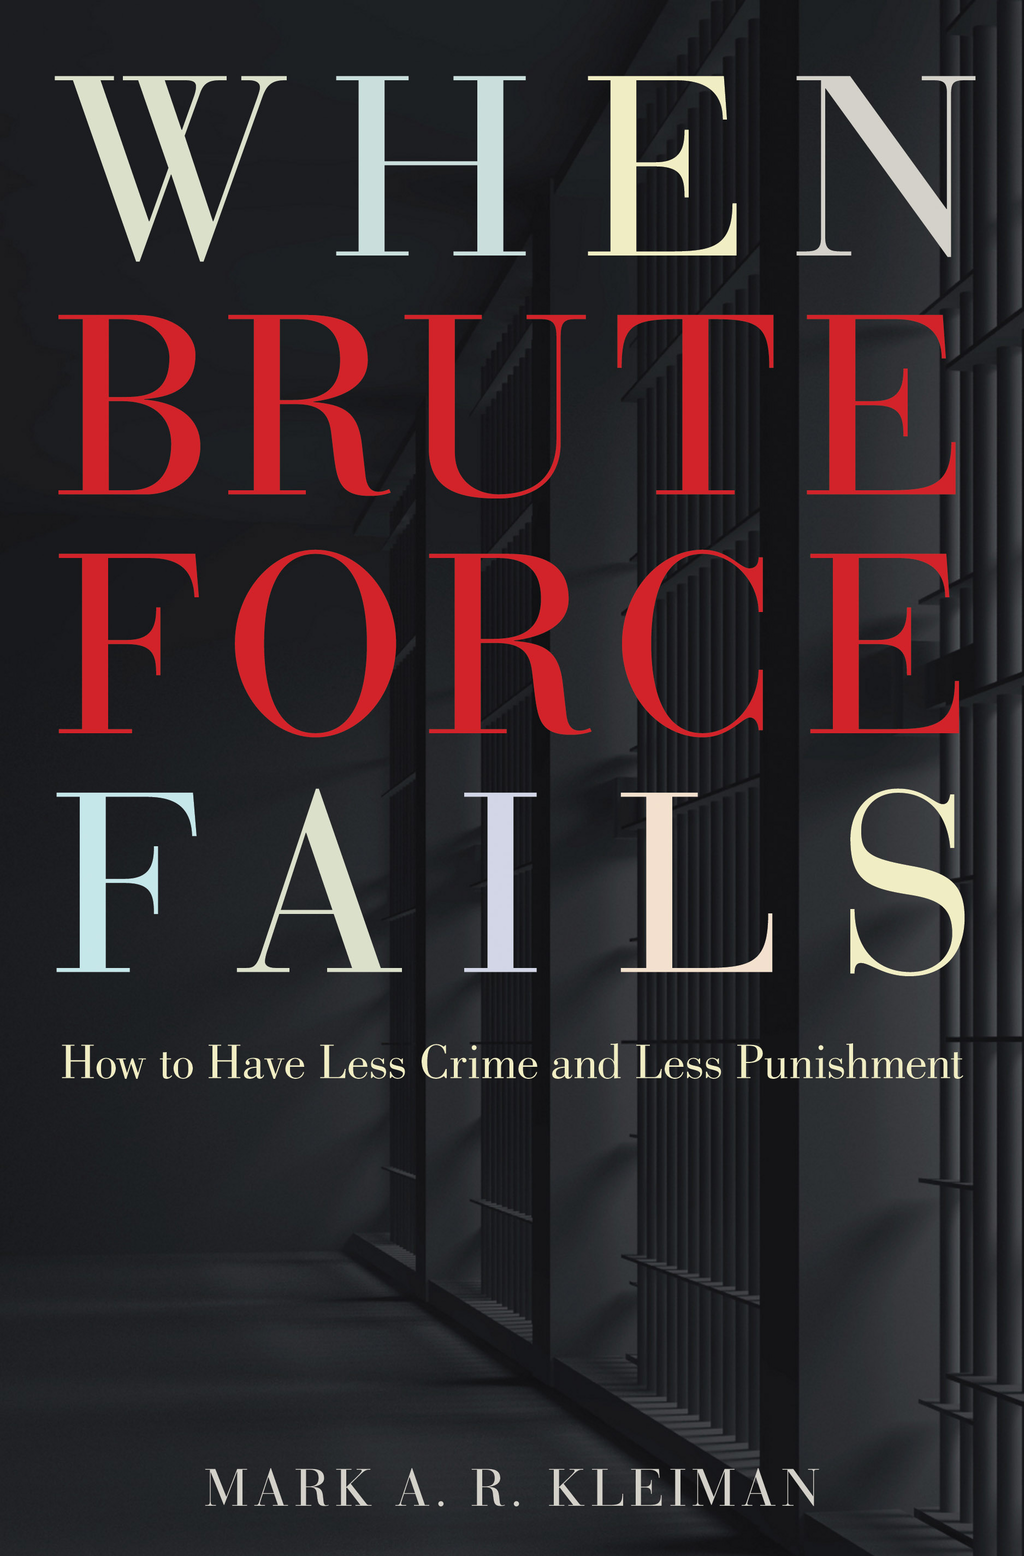 When Brute Force Fails By: Mark A. R. Kleiman